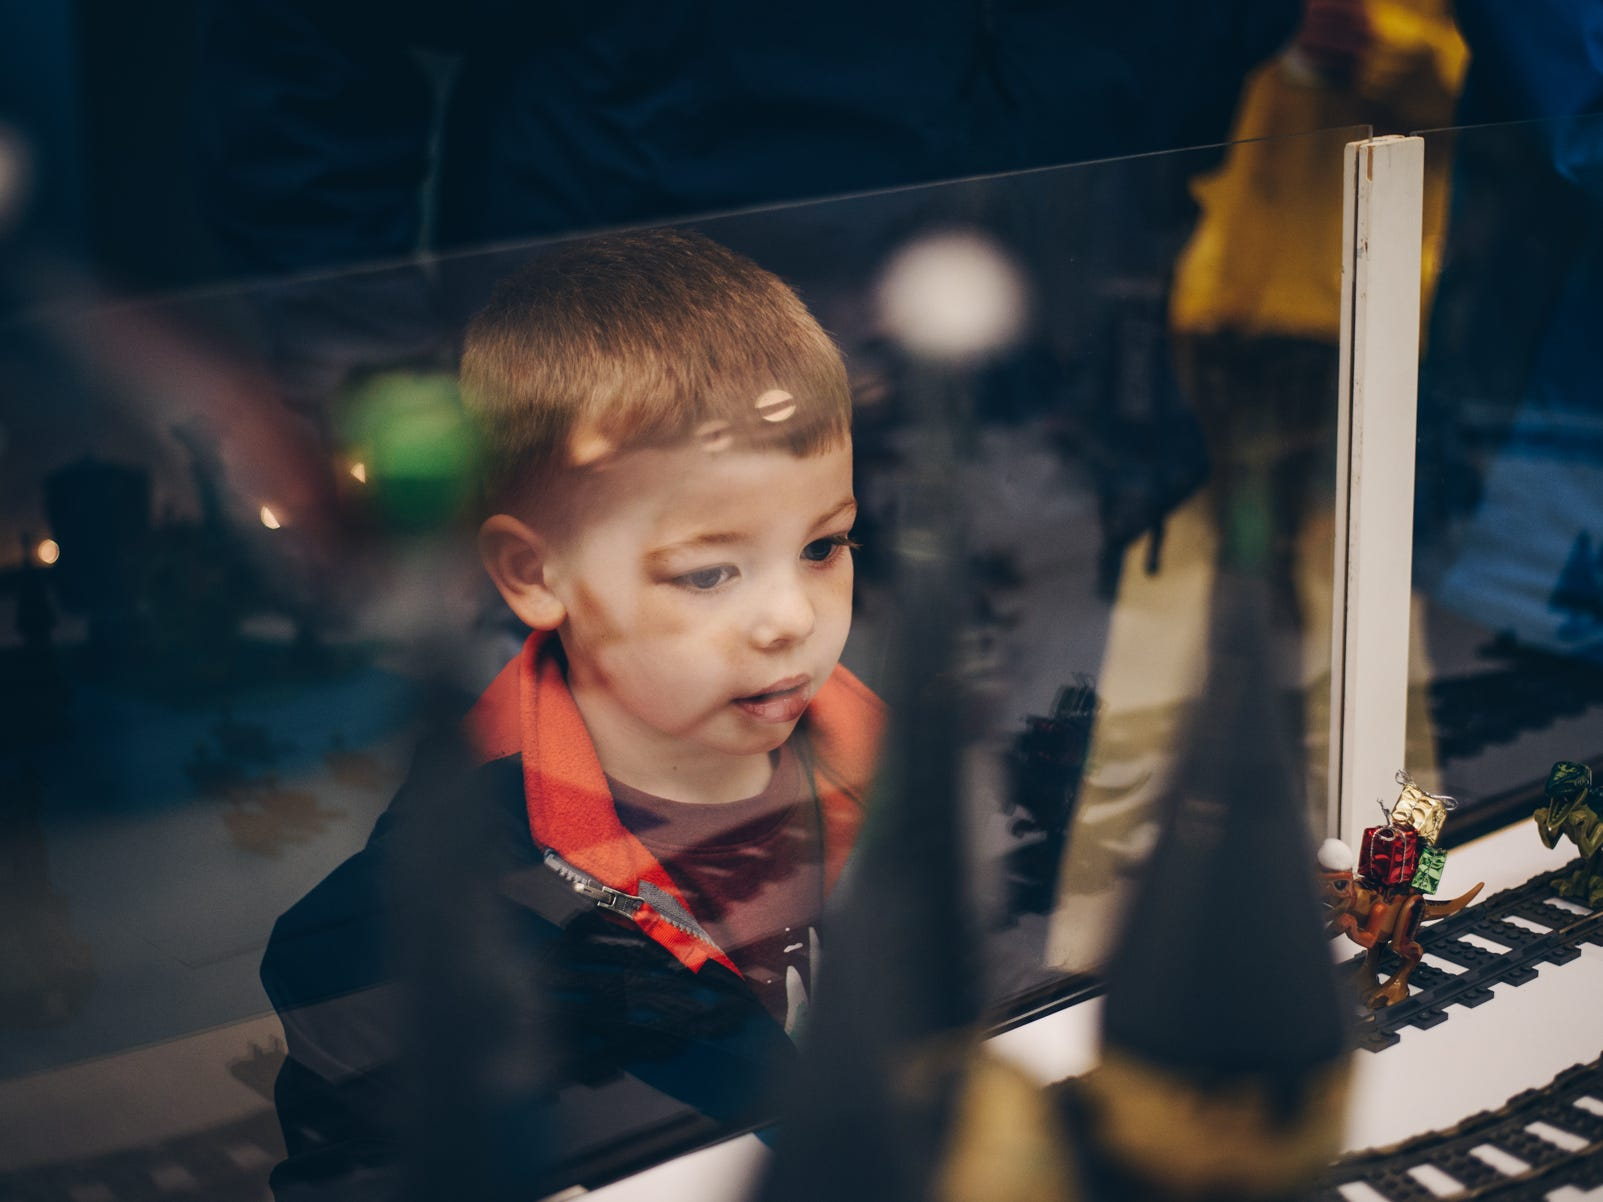 Max Irby, 4, checks out the Harry Potter train setup in the Granville Public Library during Saturday's Christmas Candlelight Walking Tour.